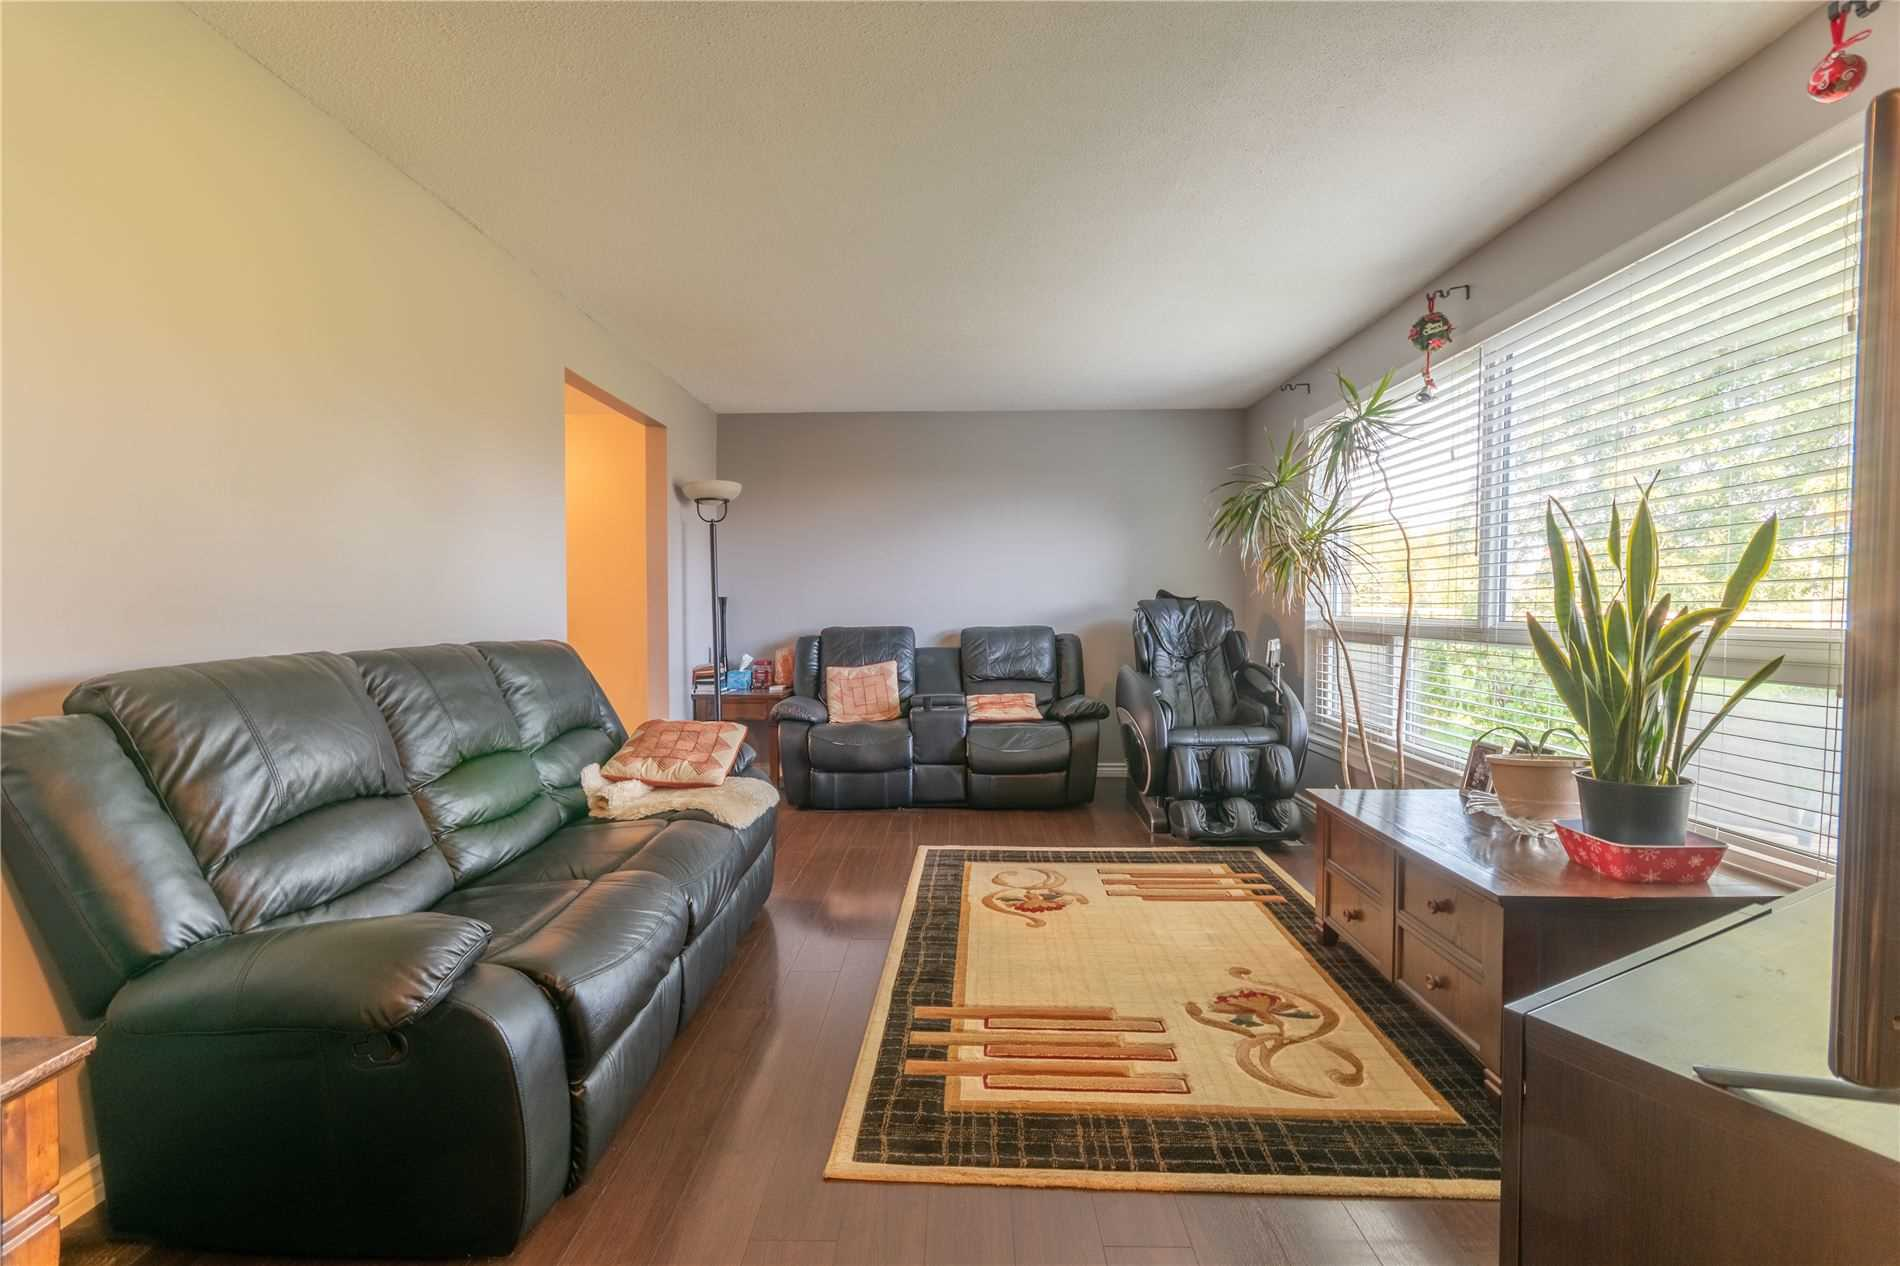 pictures of 3015 Lloydtown Aurora Rd, King L0G1J0